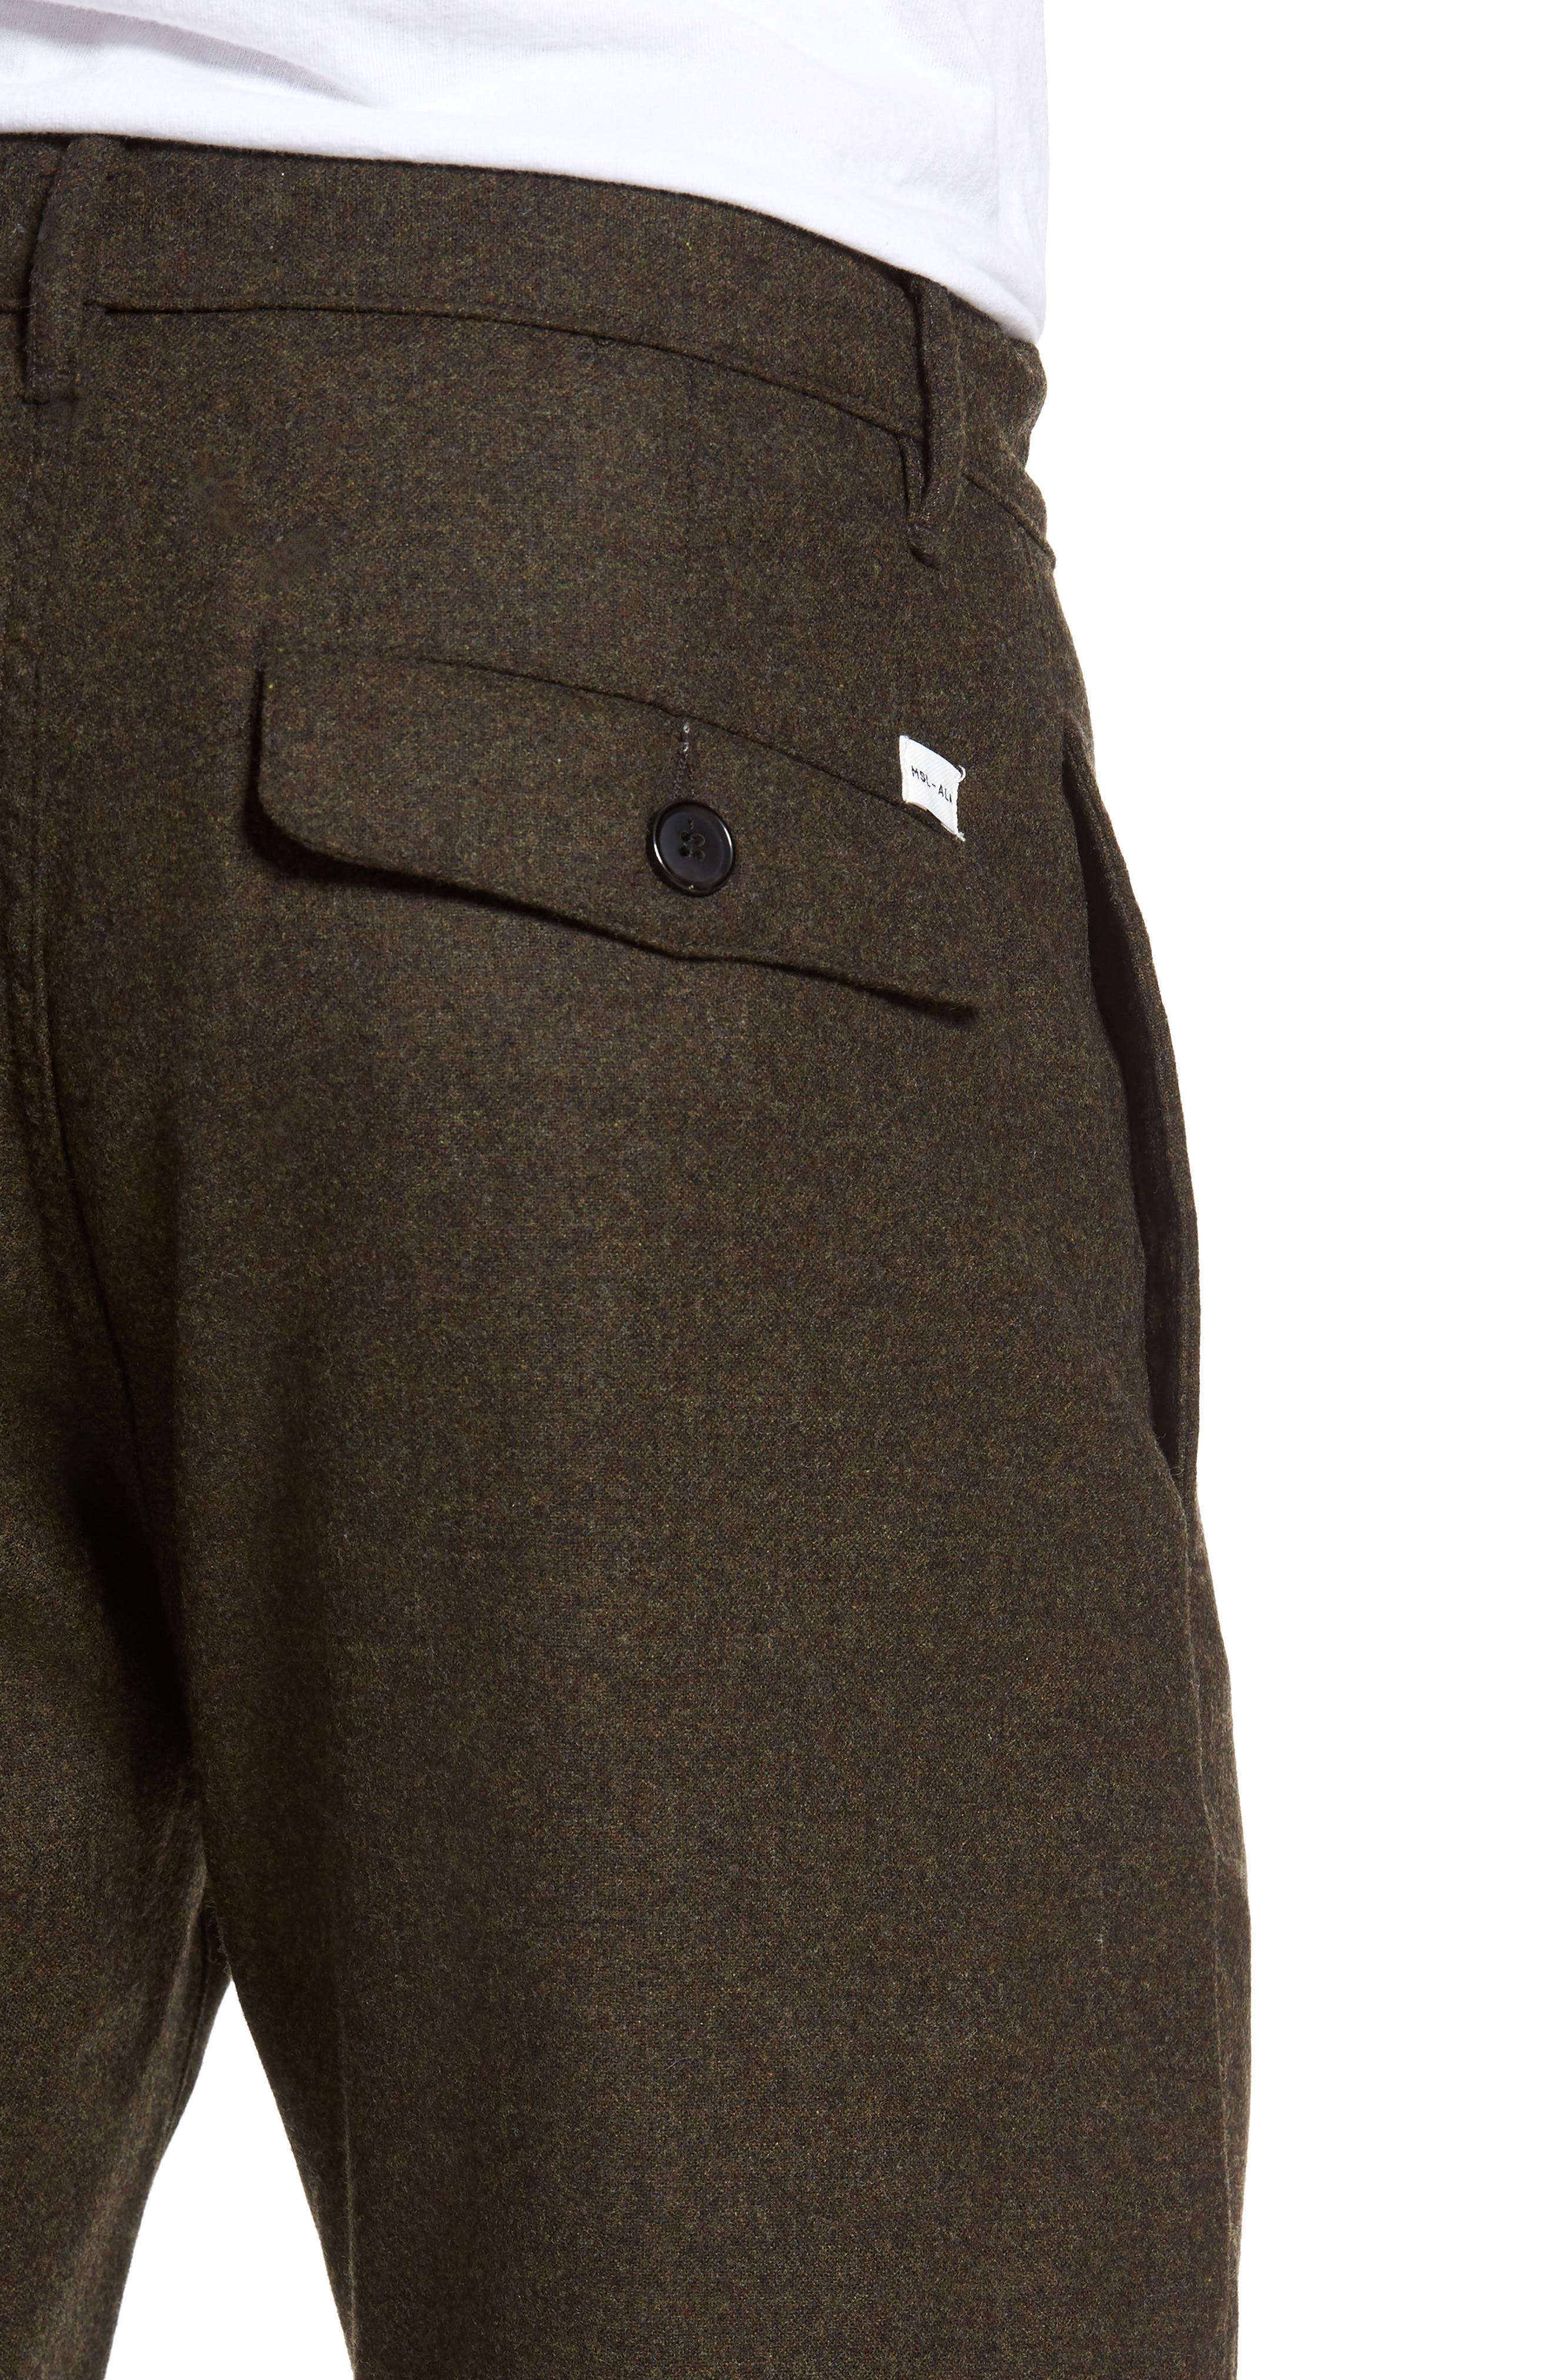 Wool & Cashmere Slim Straight Leg Chinos,                             Alternate thumbnail 4, color,                             Military